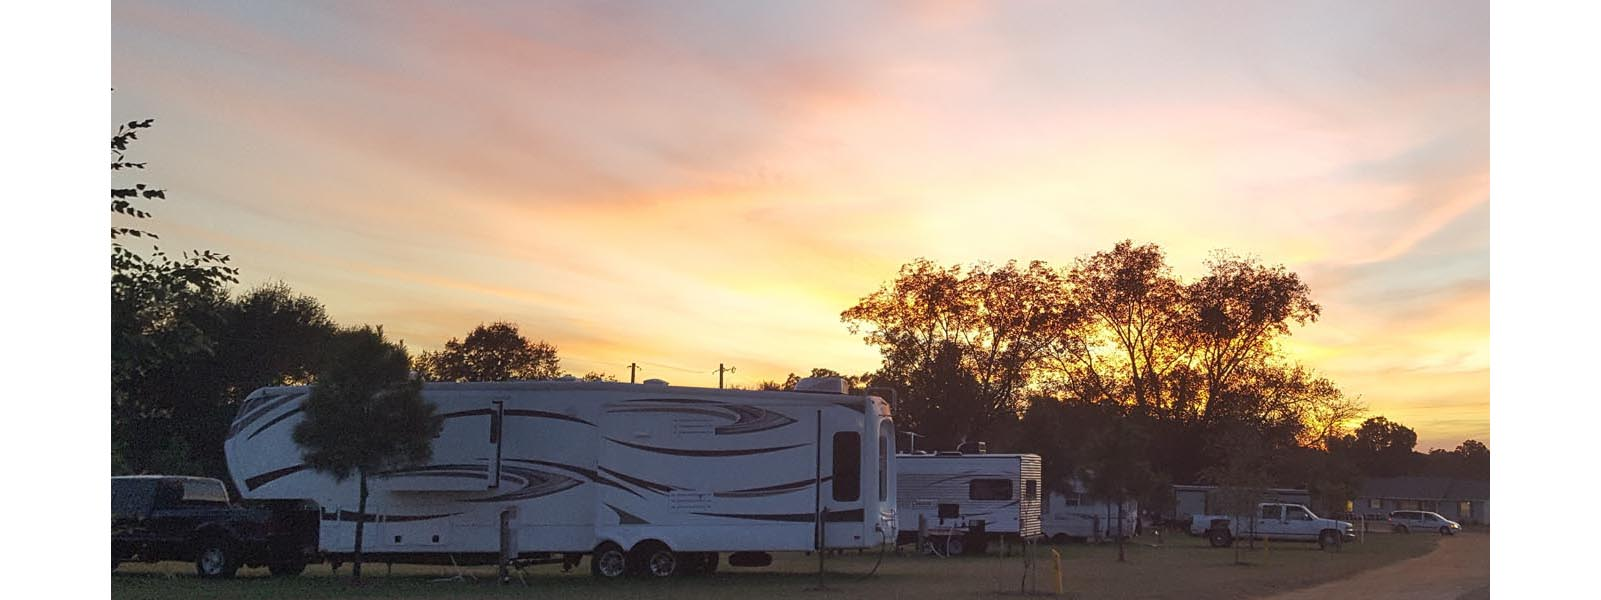 Sunset picture of 5th wheel rvs camping at the campgrounds